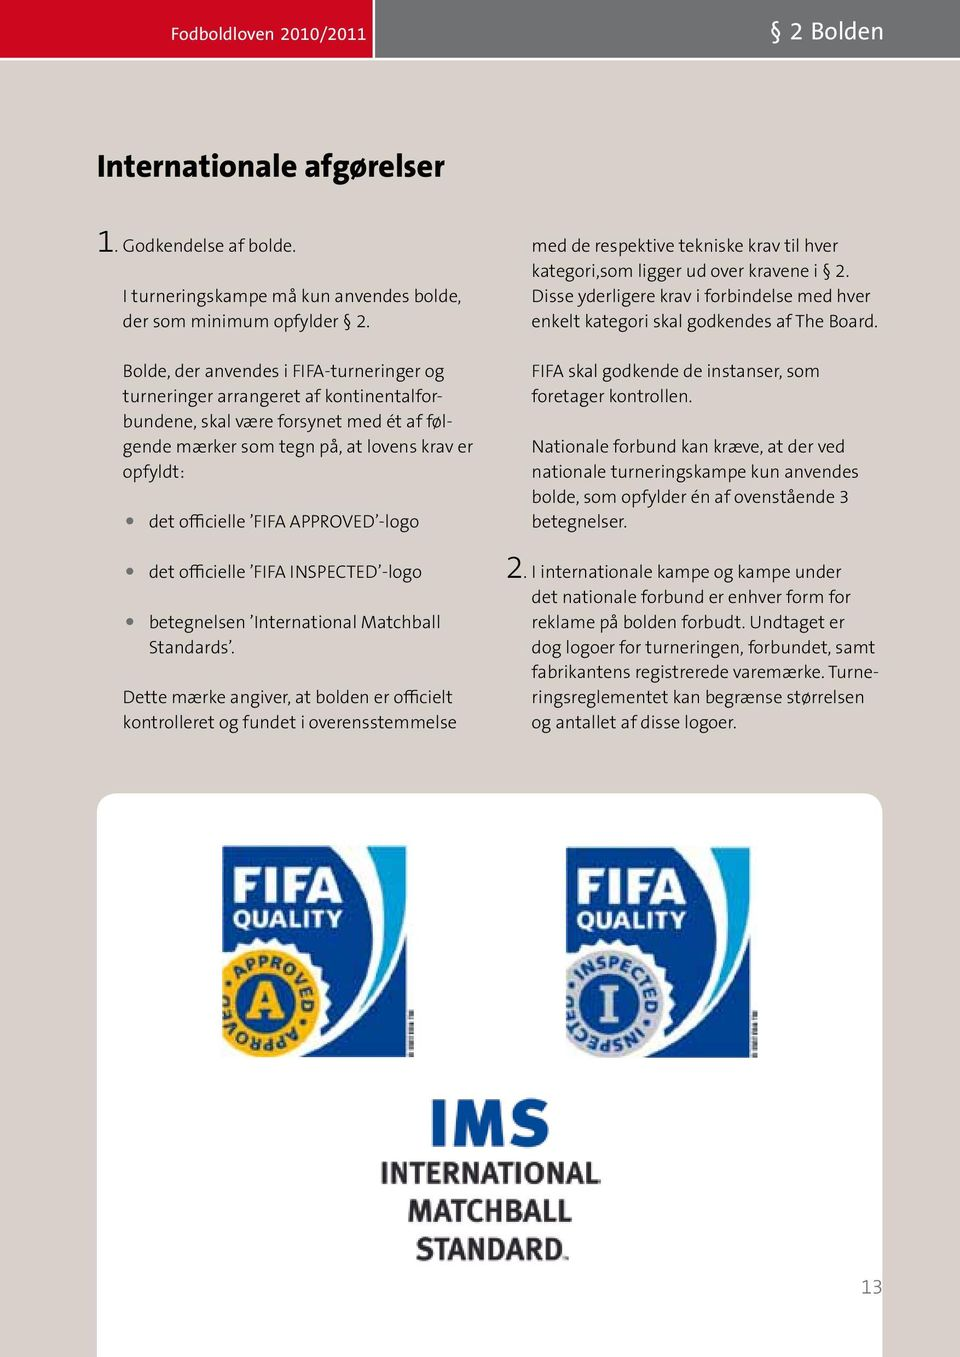 APPROVED -logo det officielle FIFA INSPECTED -logo betegnelsen International Matchball Standards.